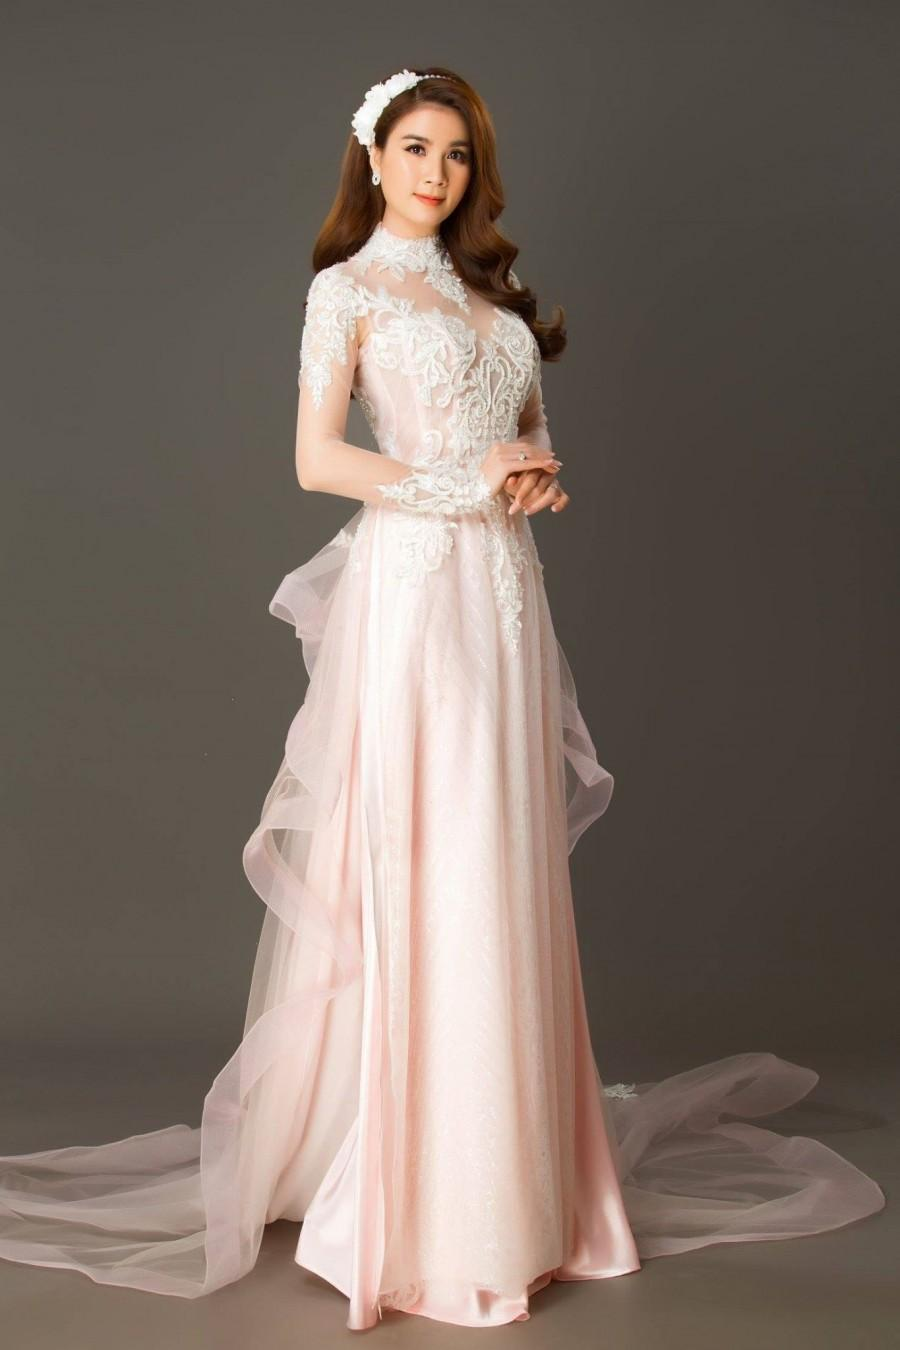 Mariage - Light Pink Custom Tailored Lace Wedding Ao Dai, Traditional Vietnamese Raglan Dress for Bride Made to Order